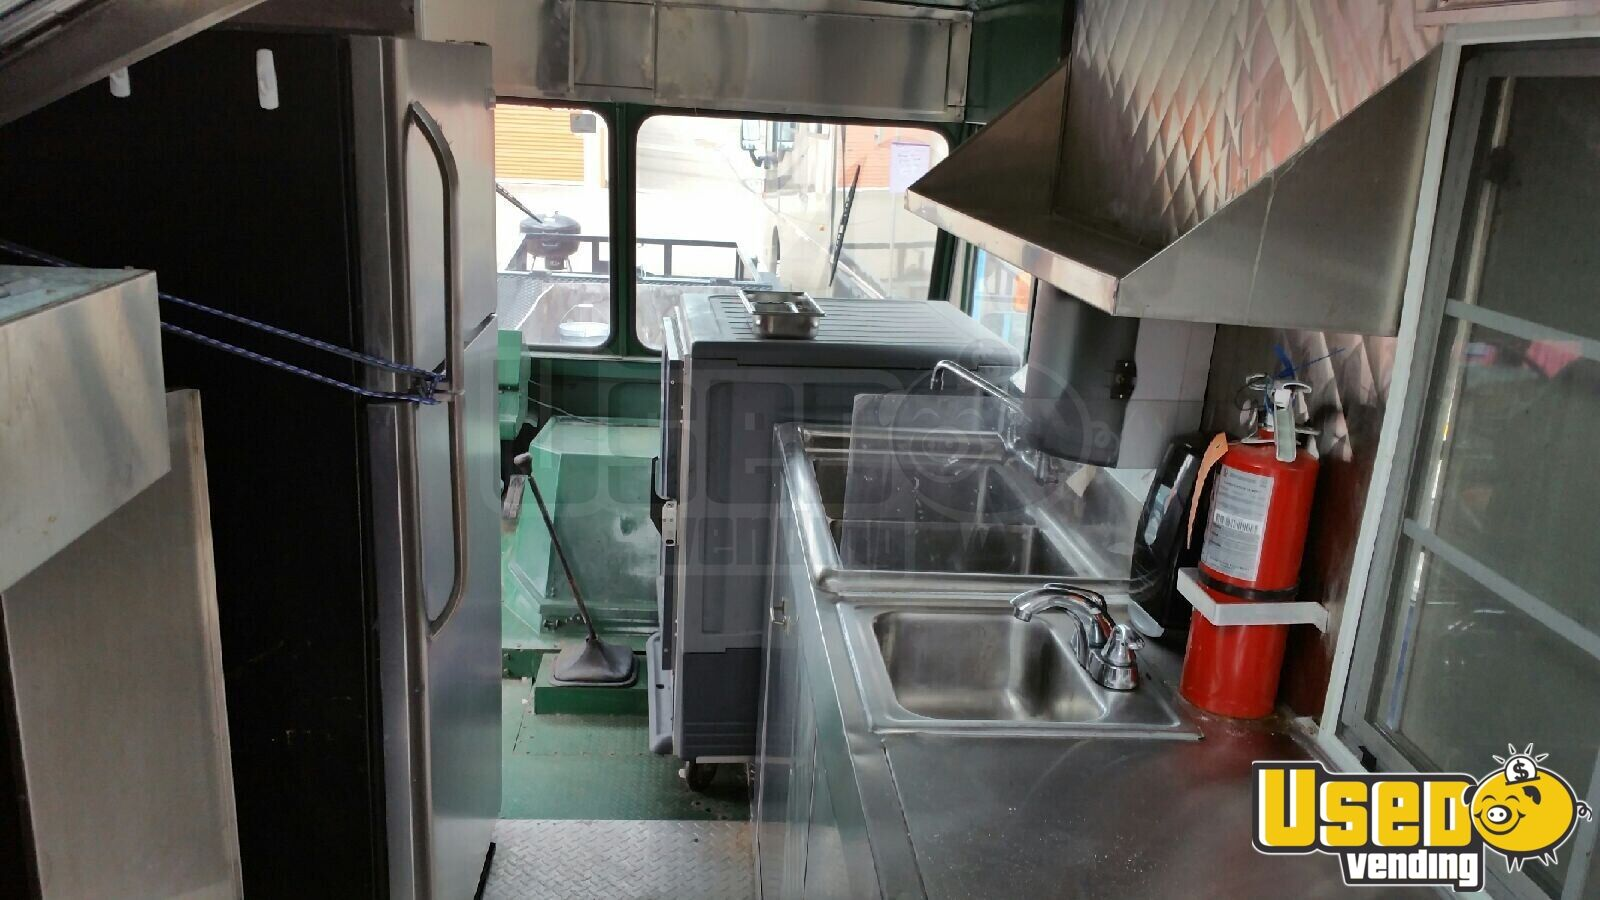 1982 Chevy All-purpose Food Truck Interior Lighting Texas Gas Engine for Sale - 13